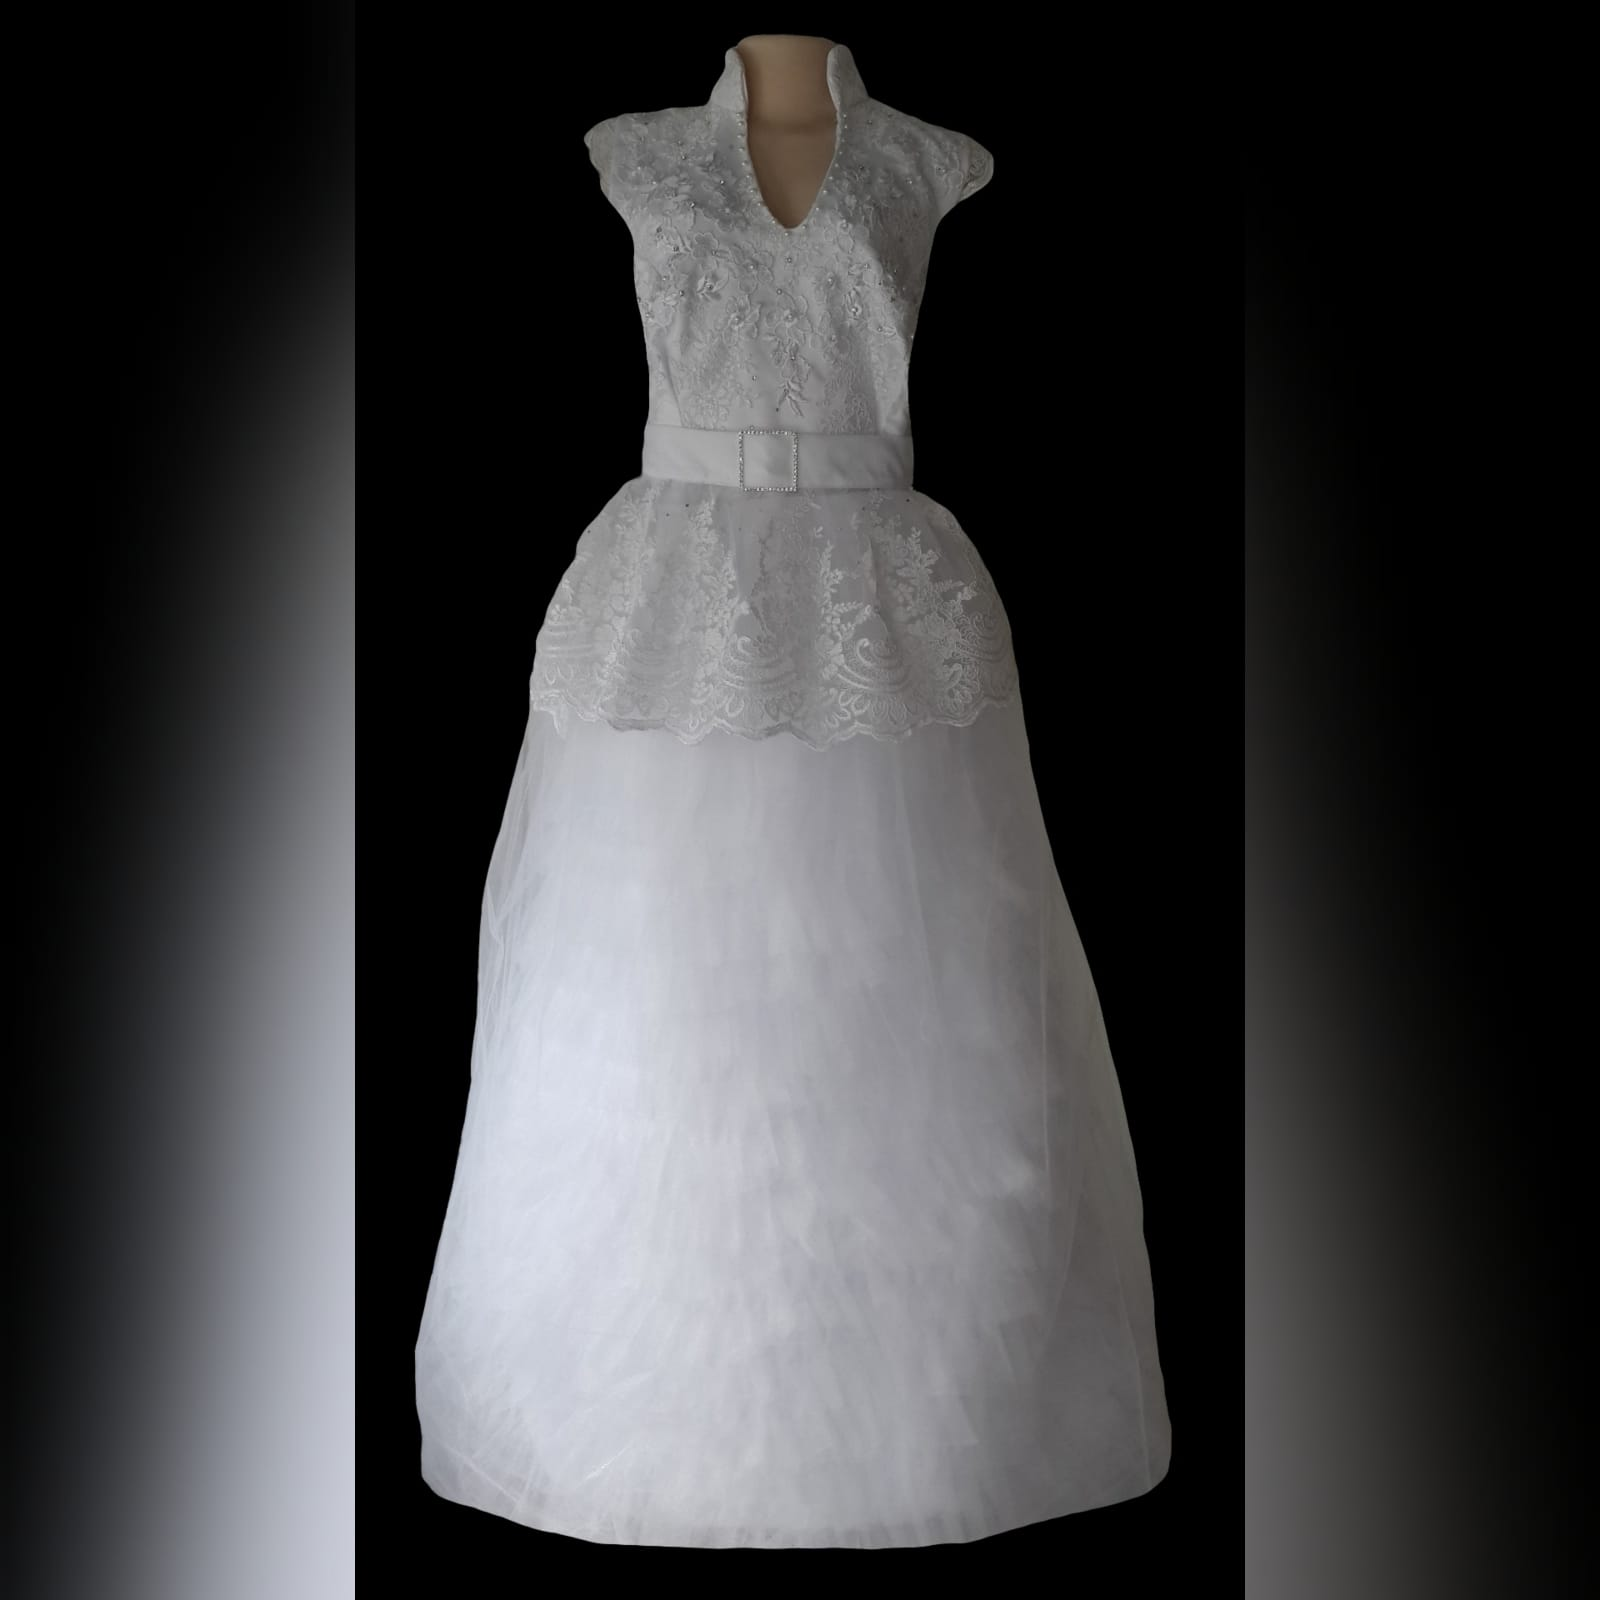 White 3 piece lace wedding dress with v neckline 2 white 3 piece lace wedding dress, detailed with pearls and beads. White mini wedding dress with peplum and pop up collar. With a removable tulle skirt.